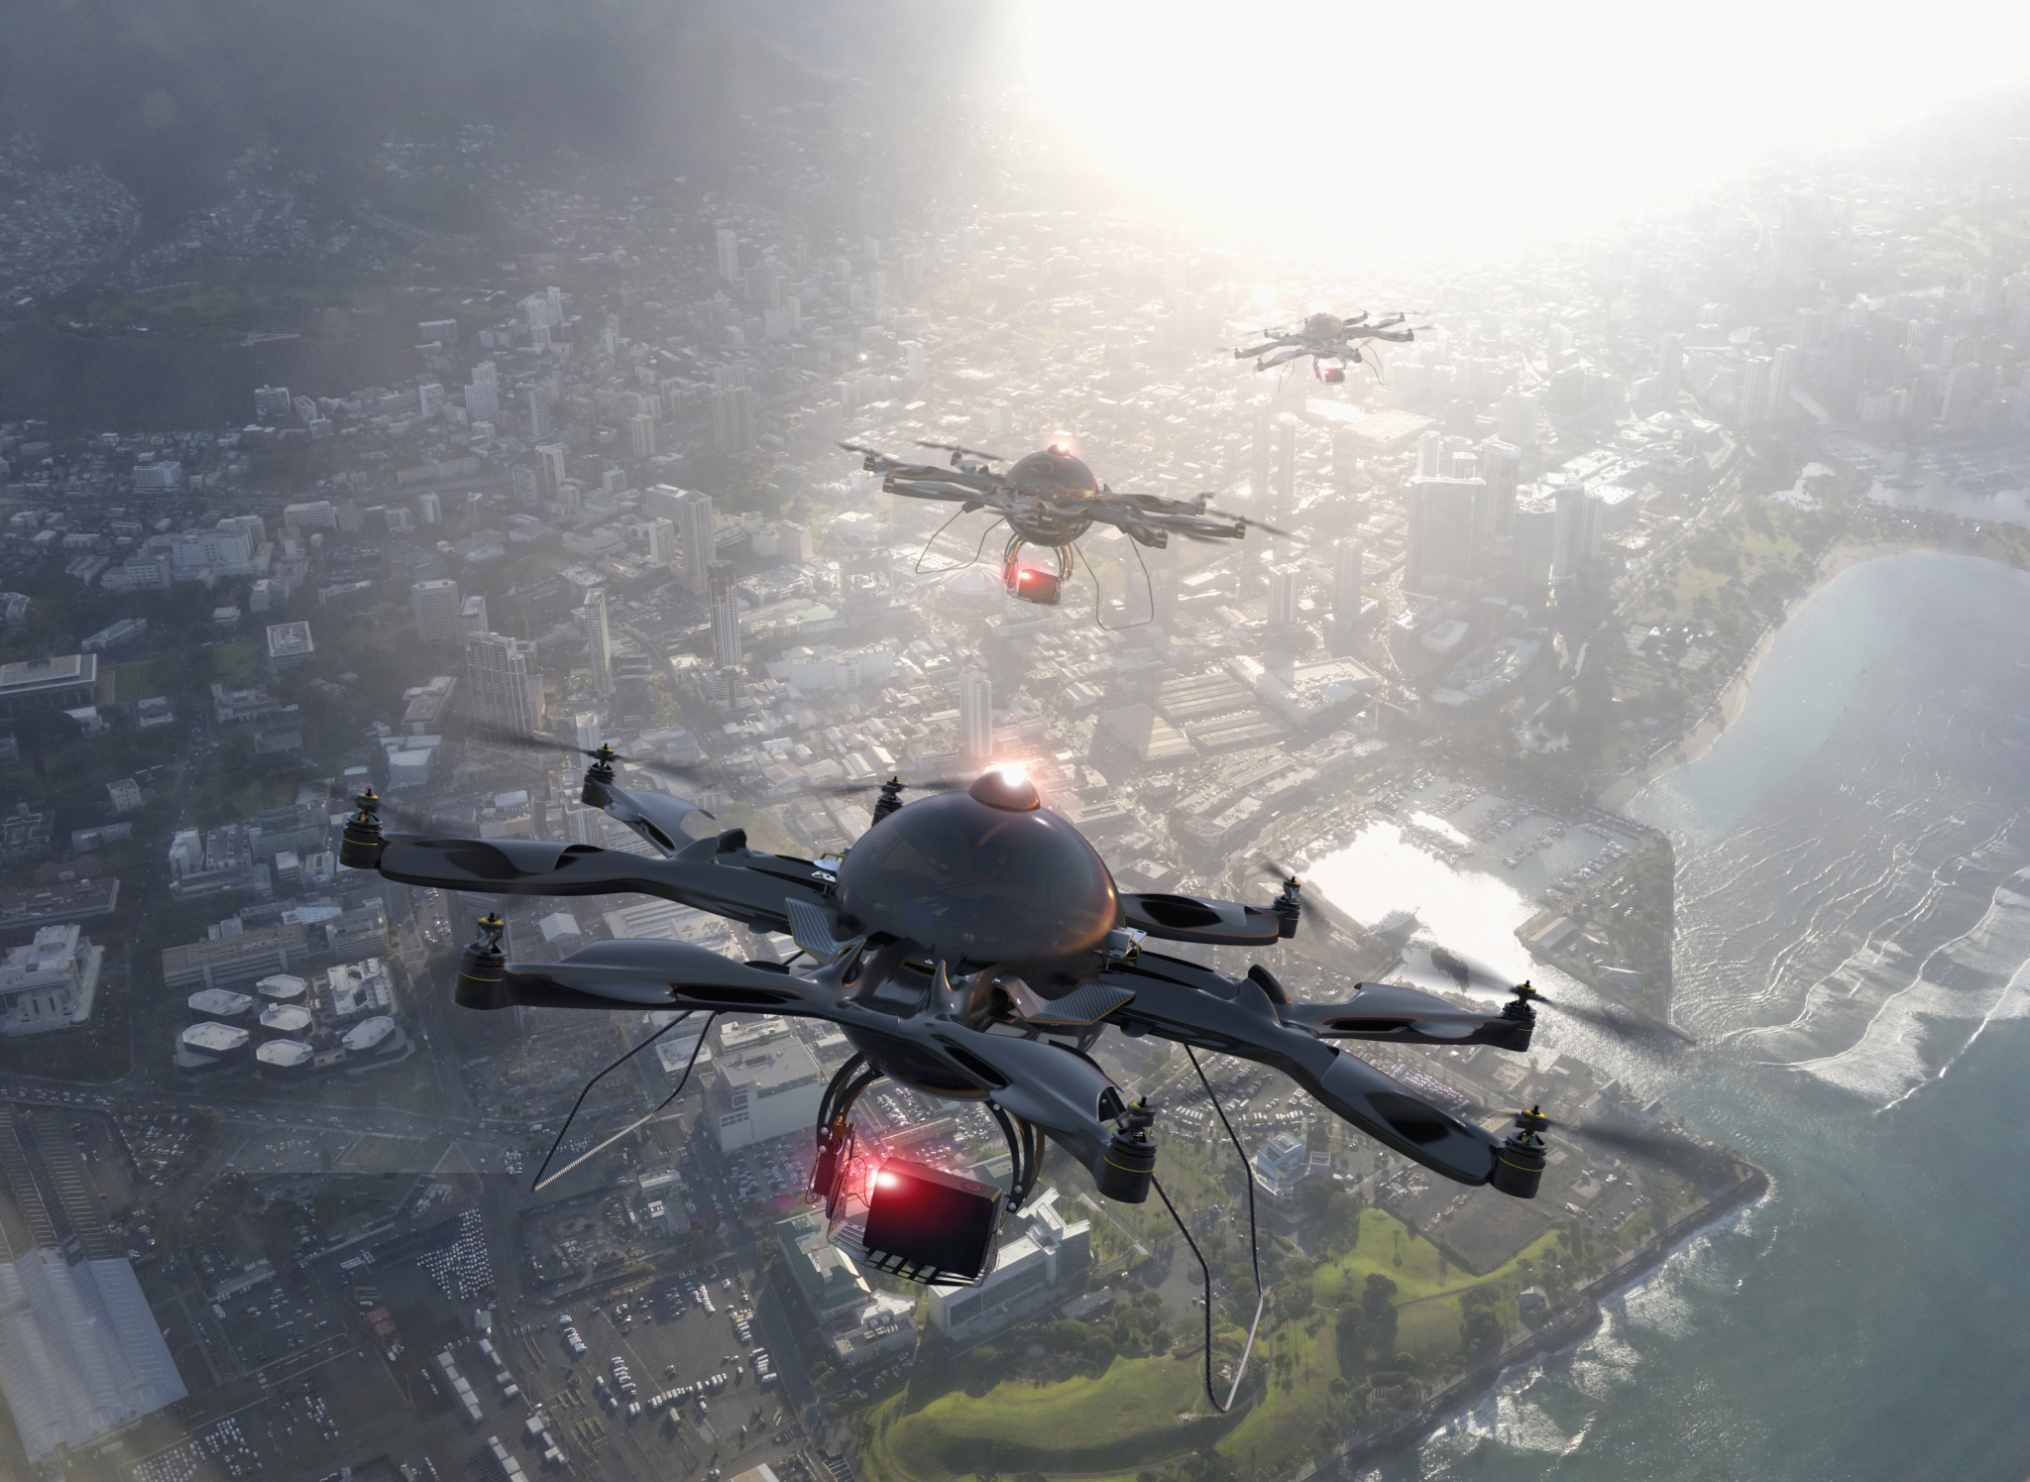 Drone Insurance on Home Insurance and Liability